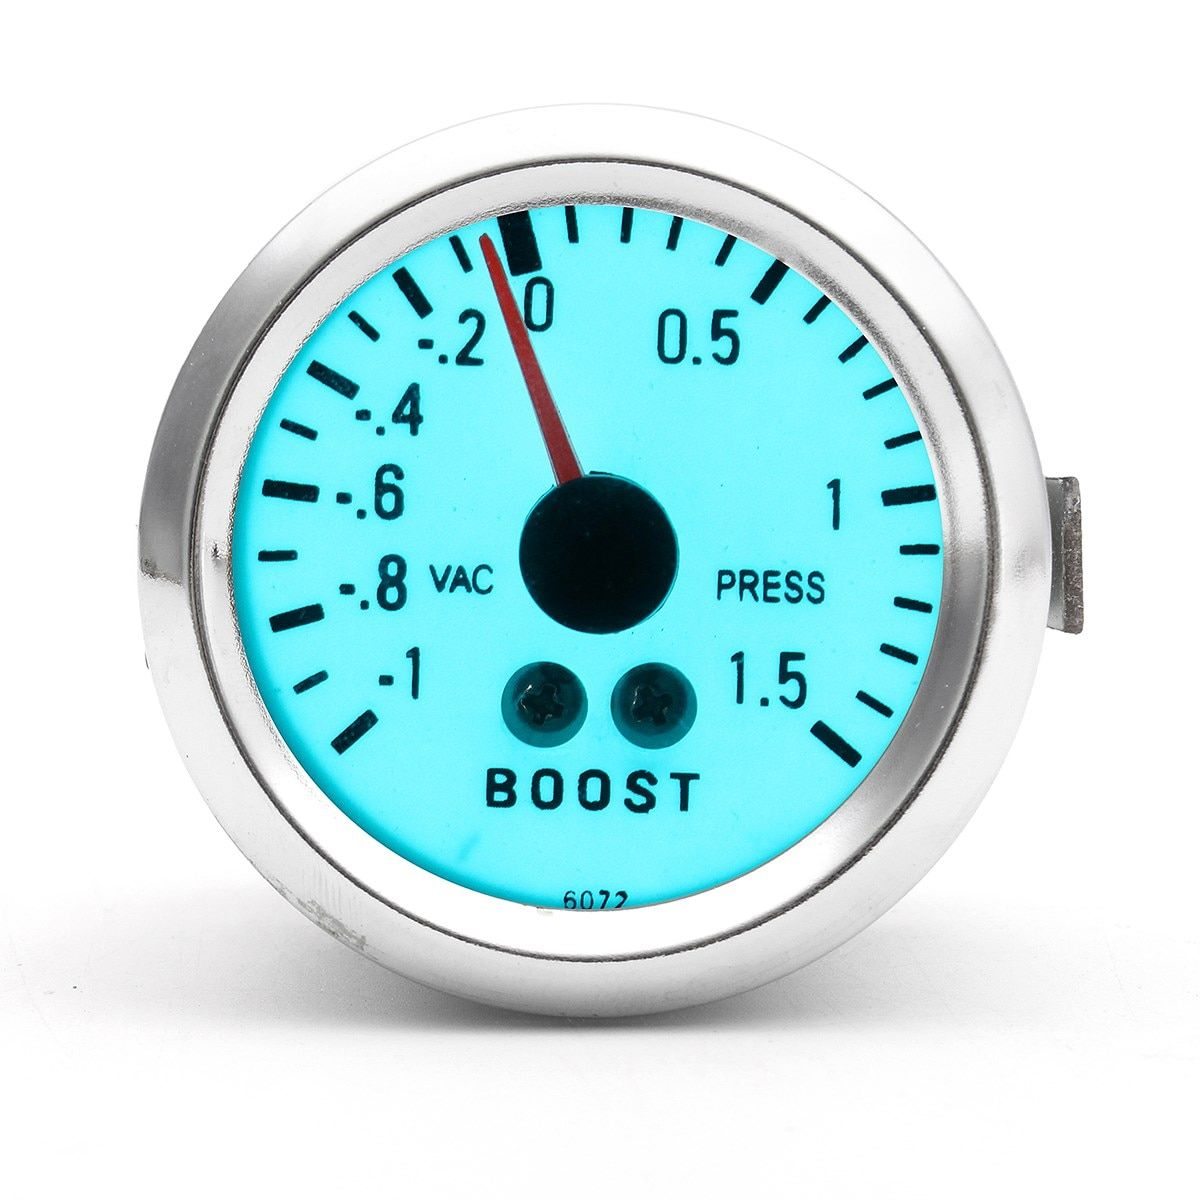 2 Inch 52mm Boost Gauge Chrome Rim Electro Mechanical Luminescent Automobile 0 to 1.5